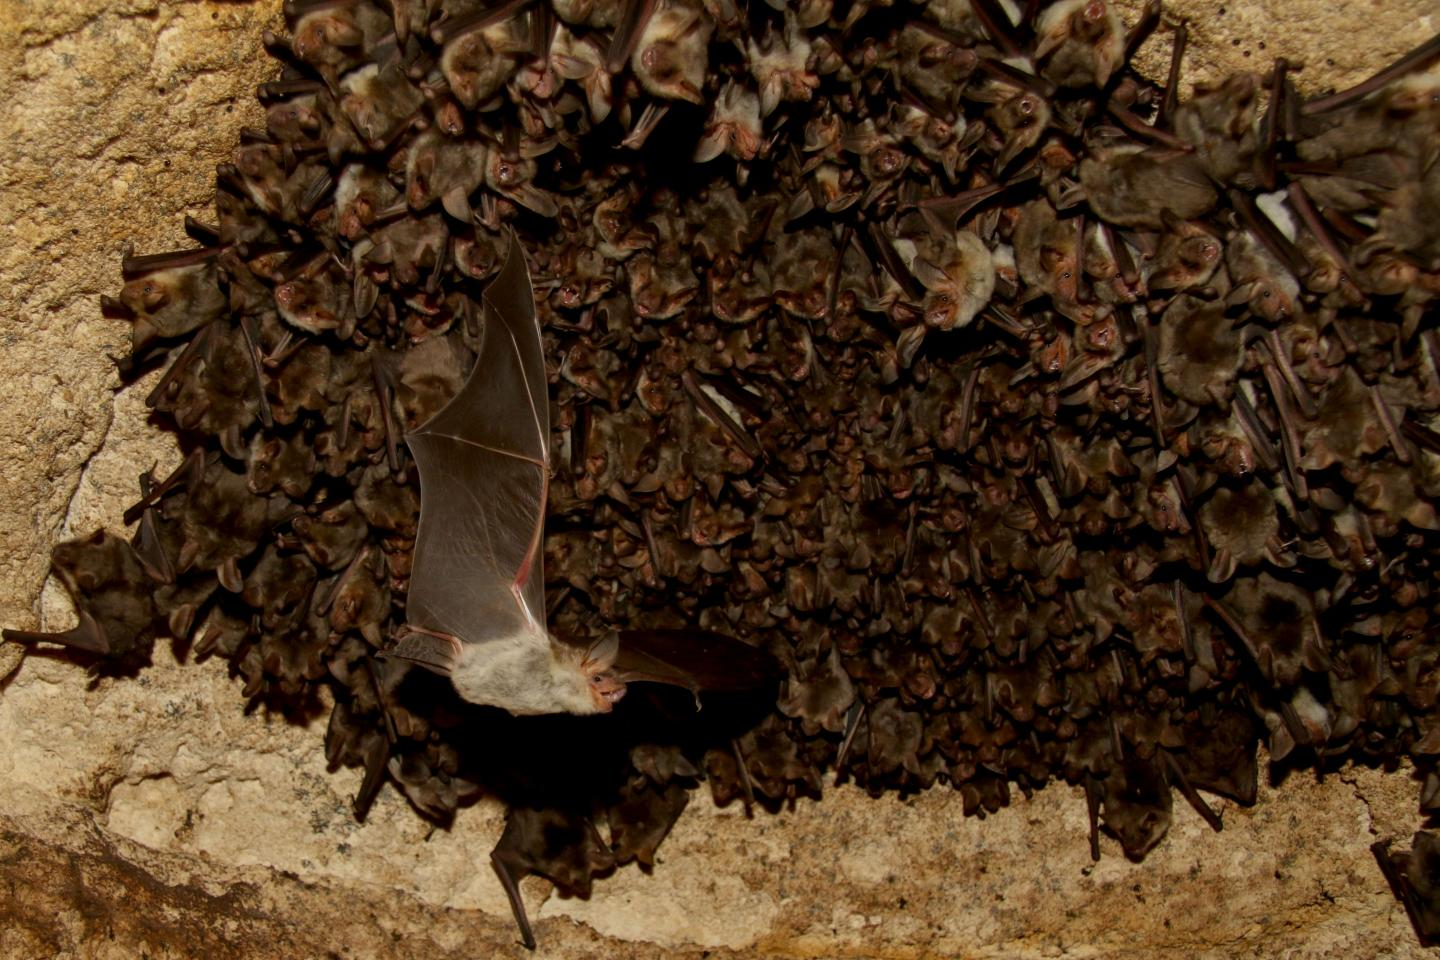 The testing was conducted on greater mouse-eared bats (Myotis myotis) from the Orlova Chuka cave in Bulgaria